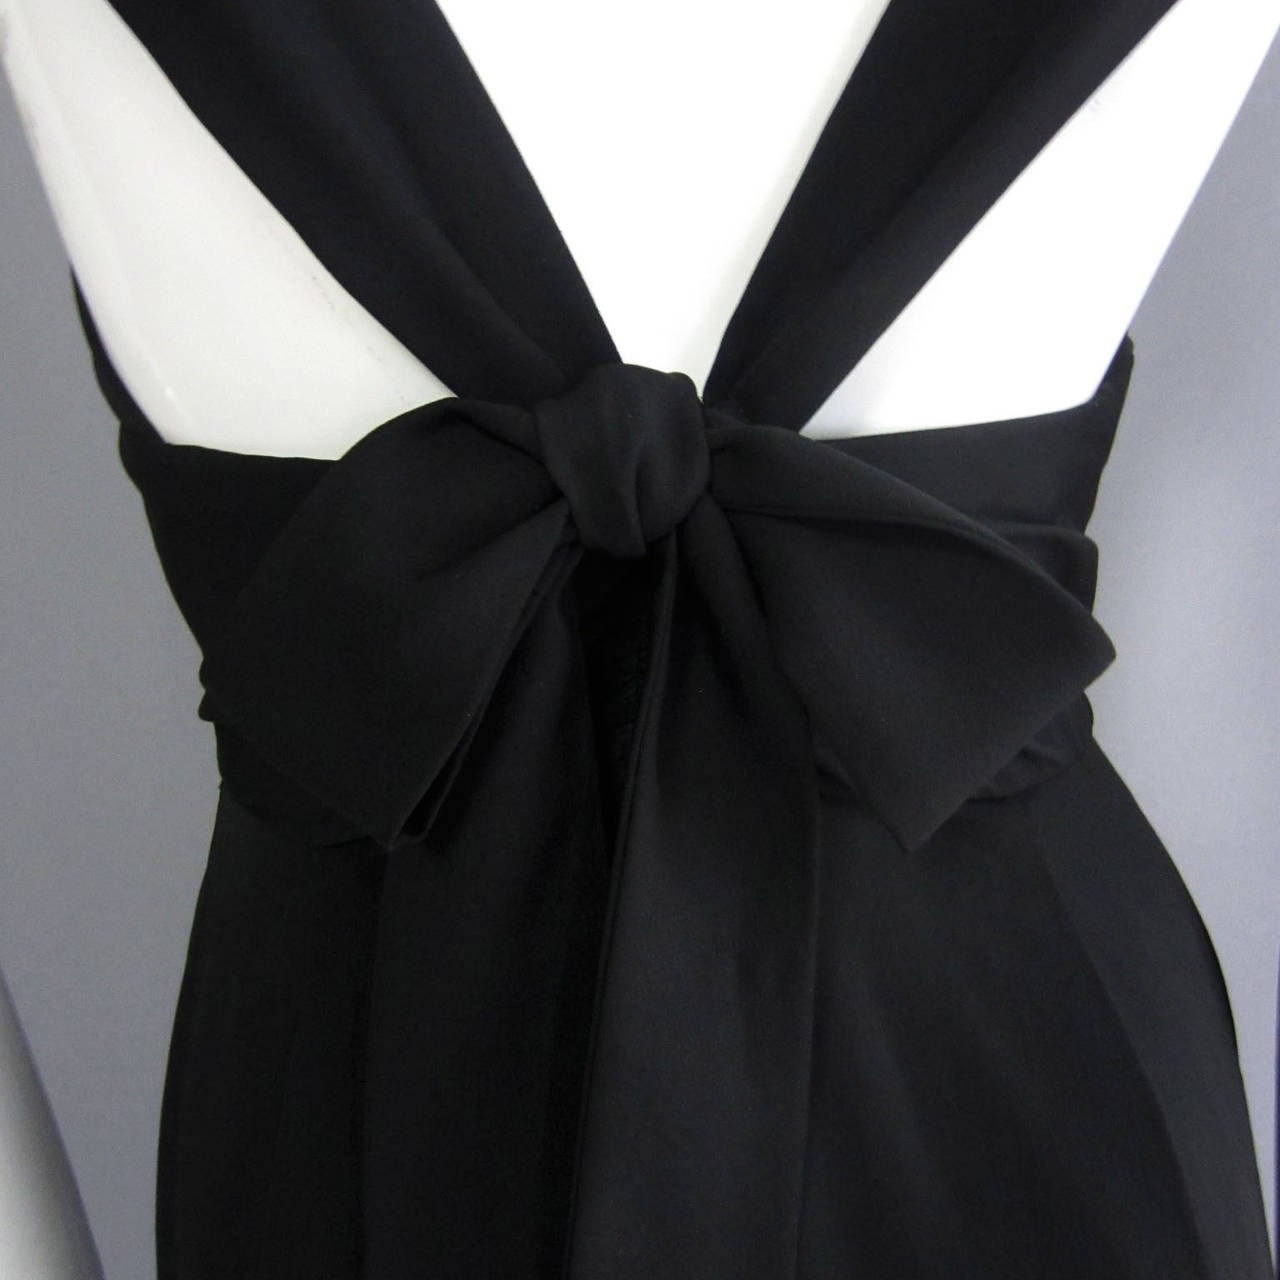 NORMAN NORELL Black Column Evening Gown with Back Tie Detail For Sale 5